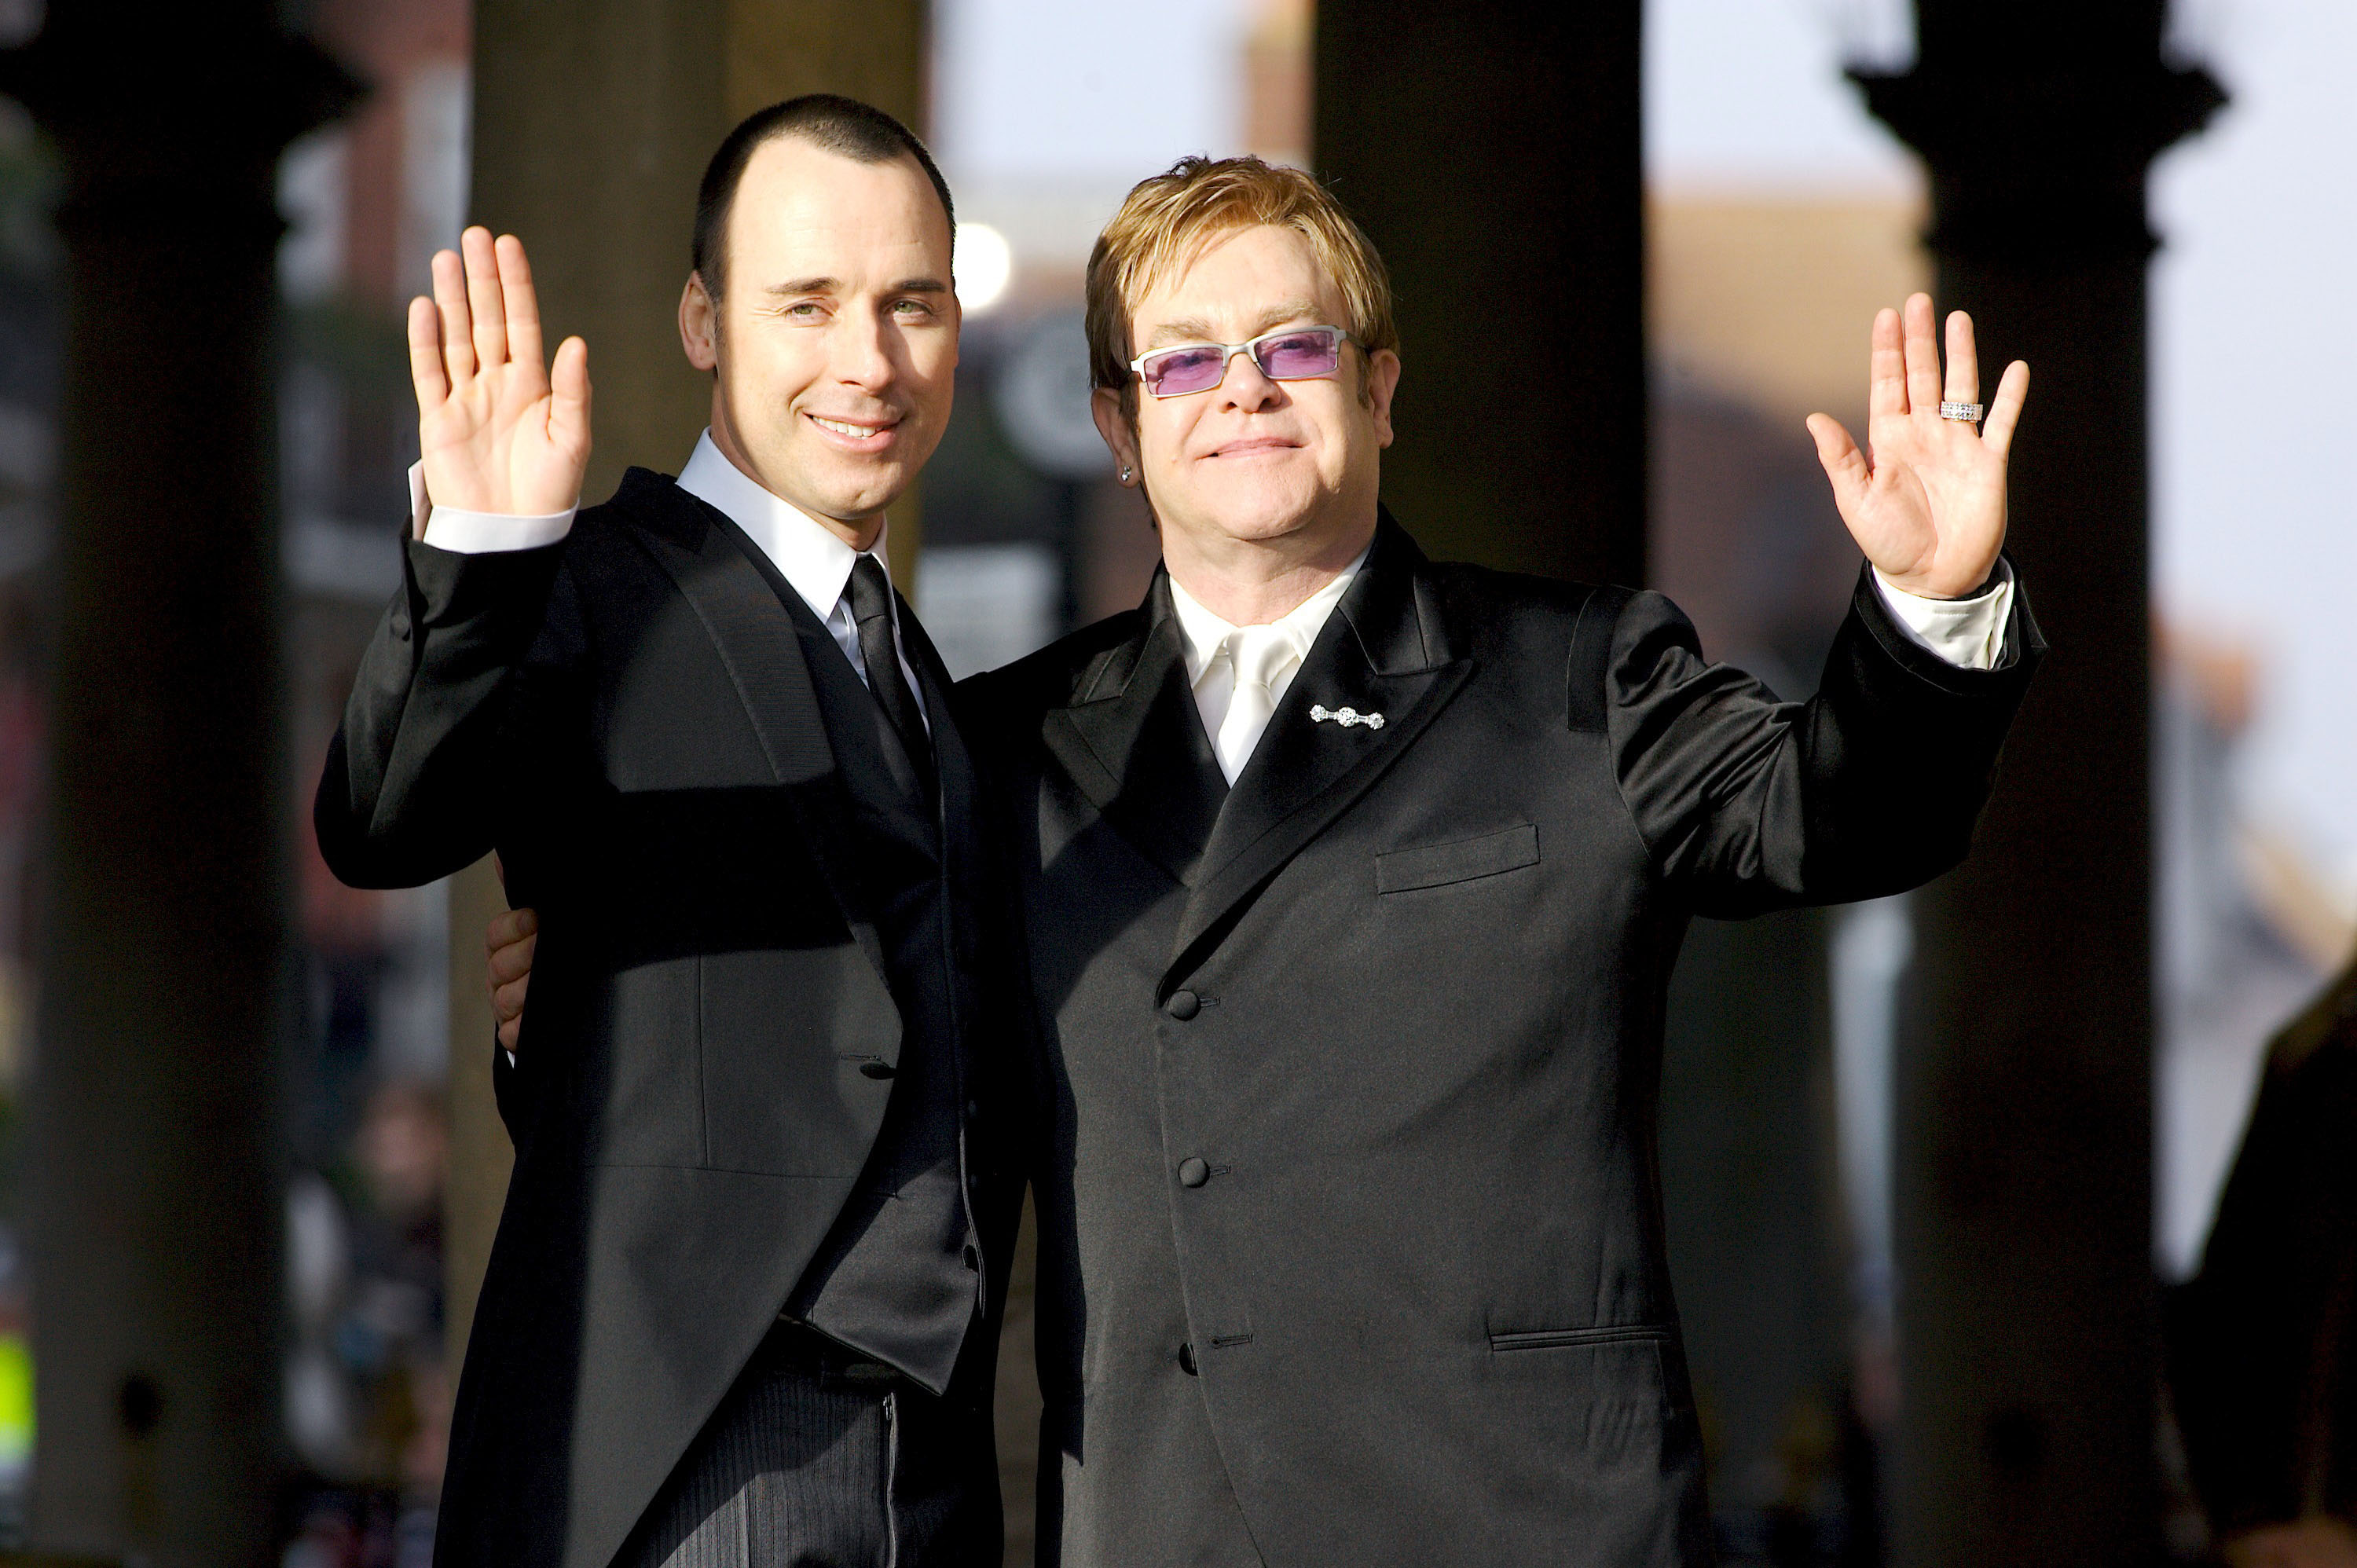 Sir Elton John and David Furnish's Civil Partnership Ceremony